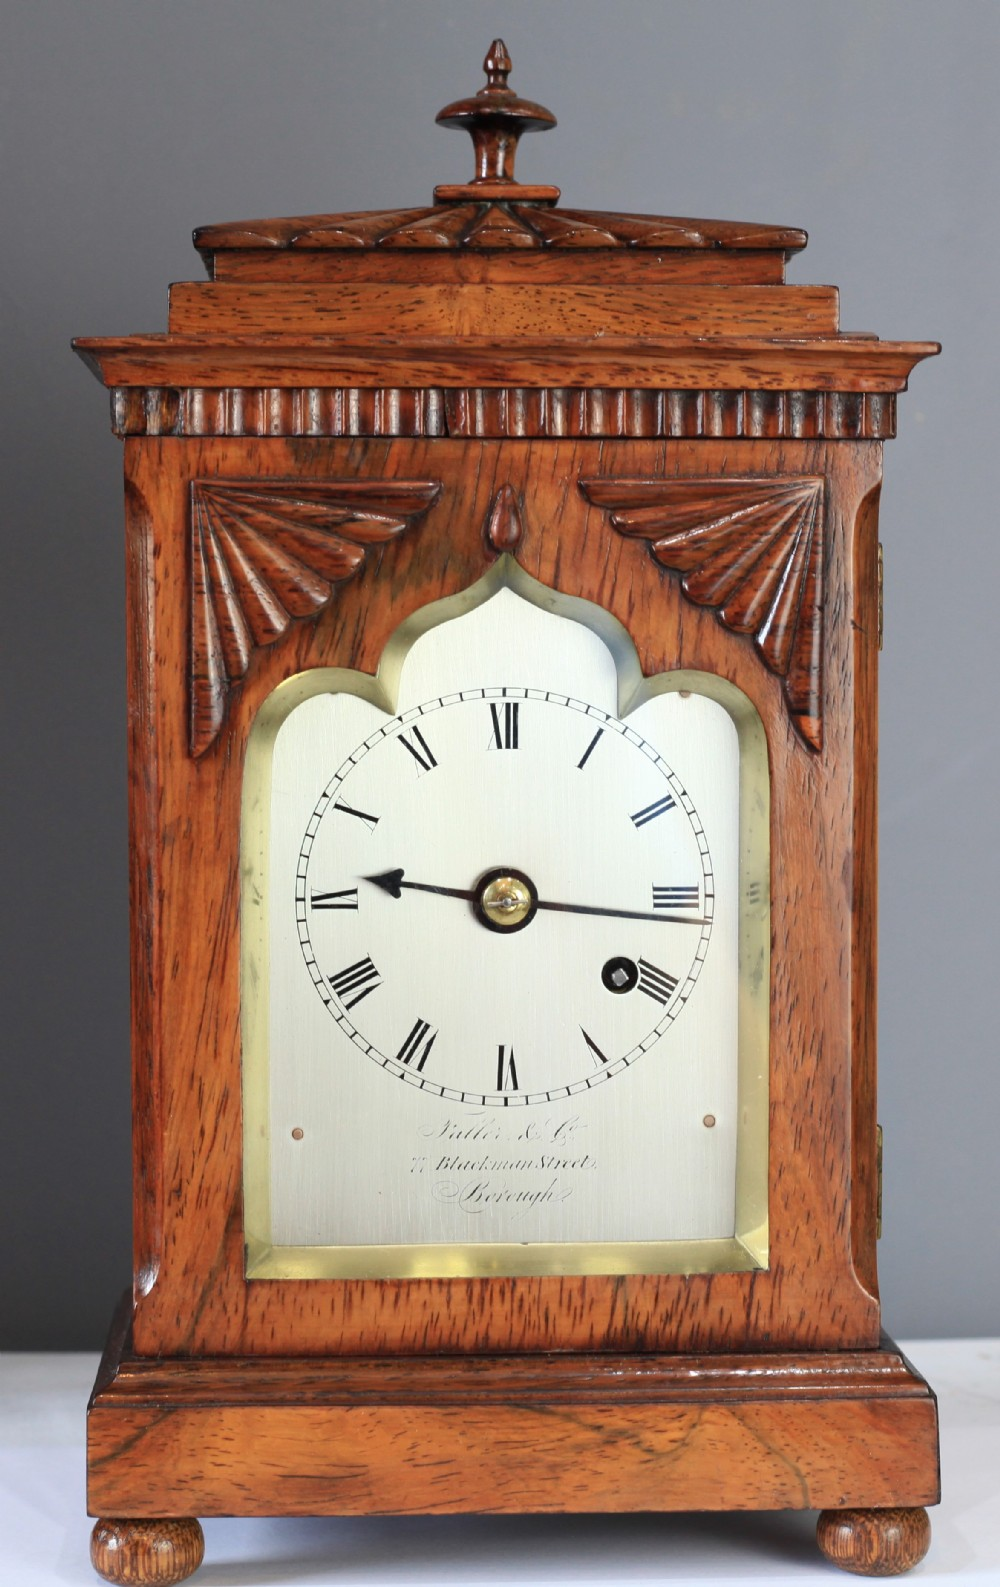 miniature rosewood bracket library clock by fallar and co c1830